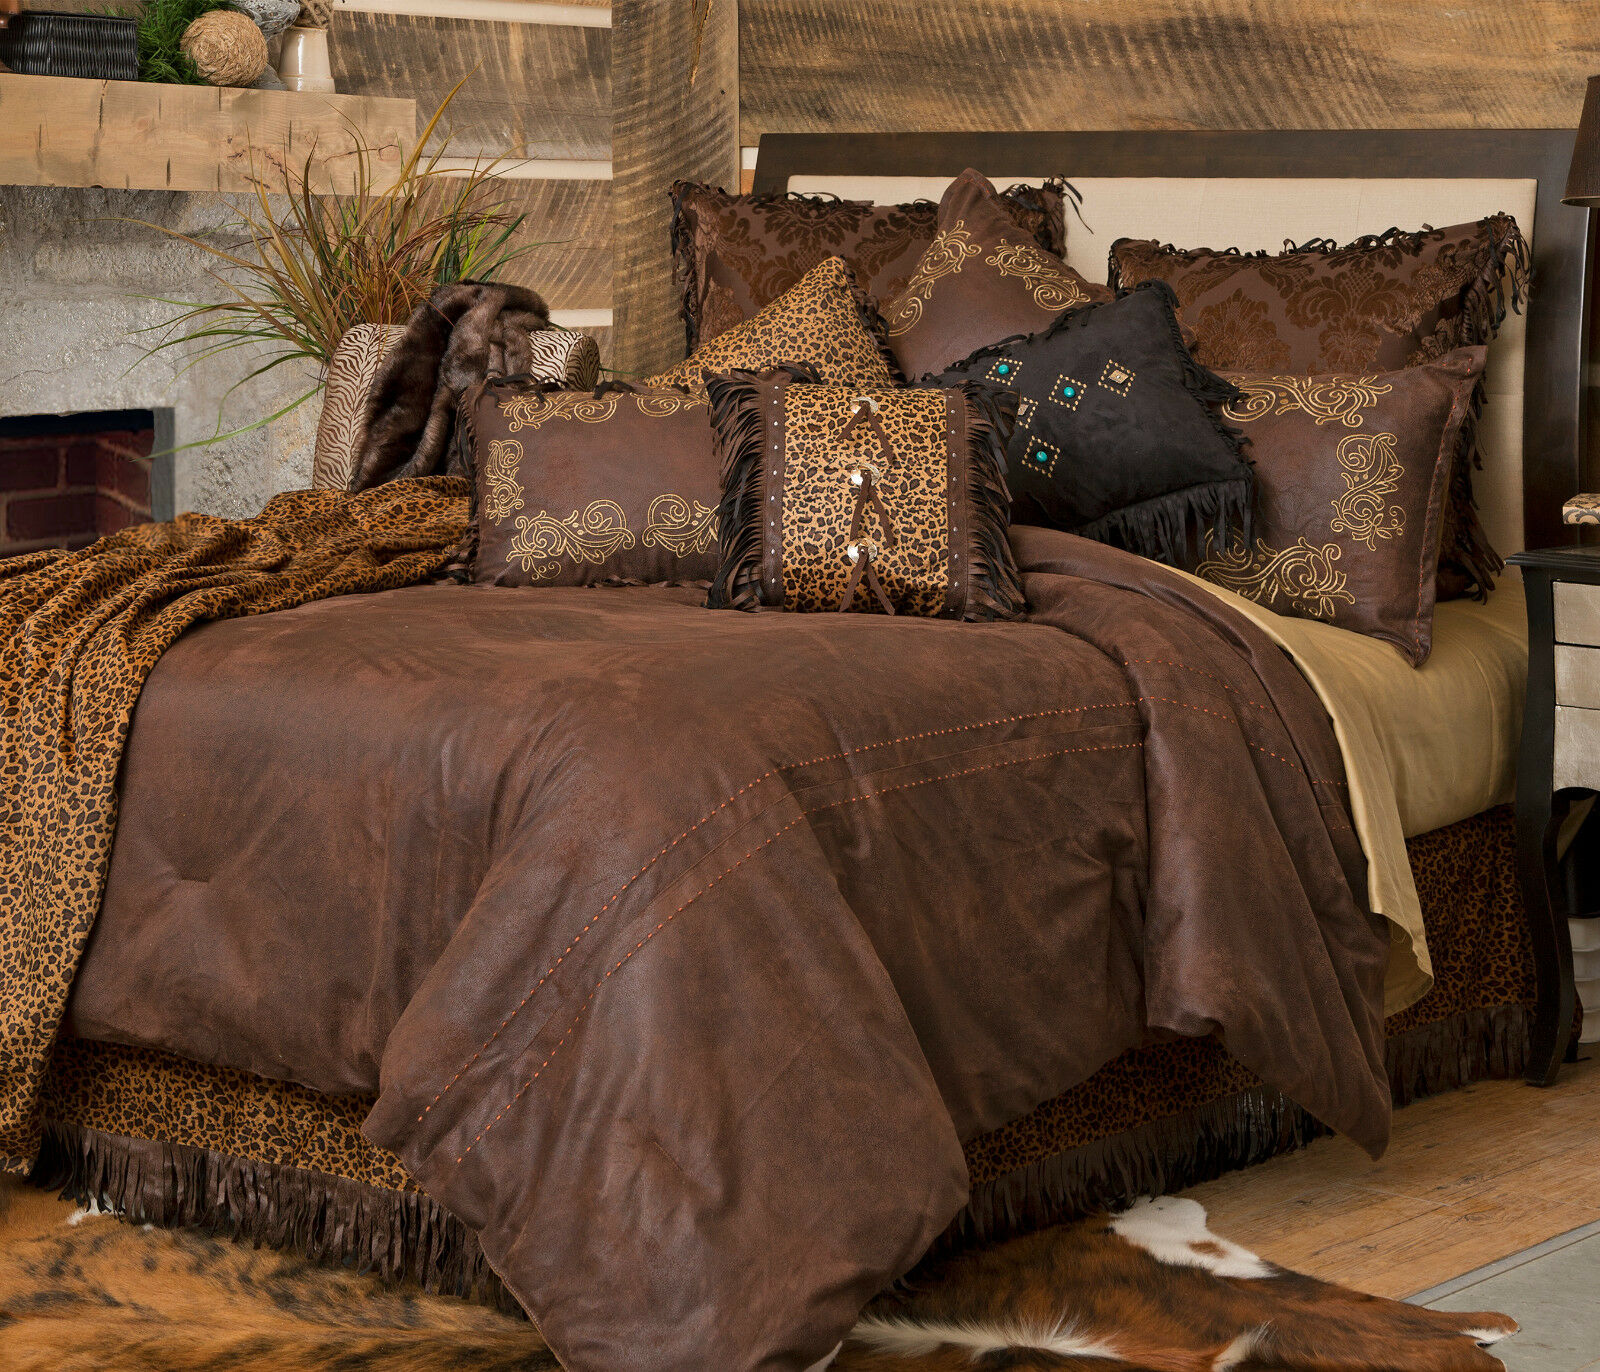 Gold Rush 5 Piece Comforter Bedding Set with  Drapes Option - FREE SHIPPING